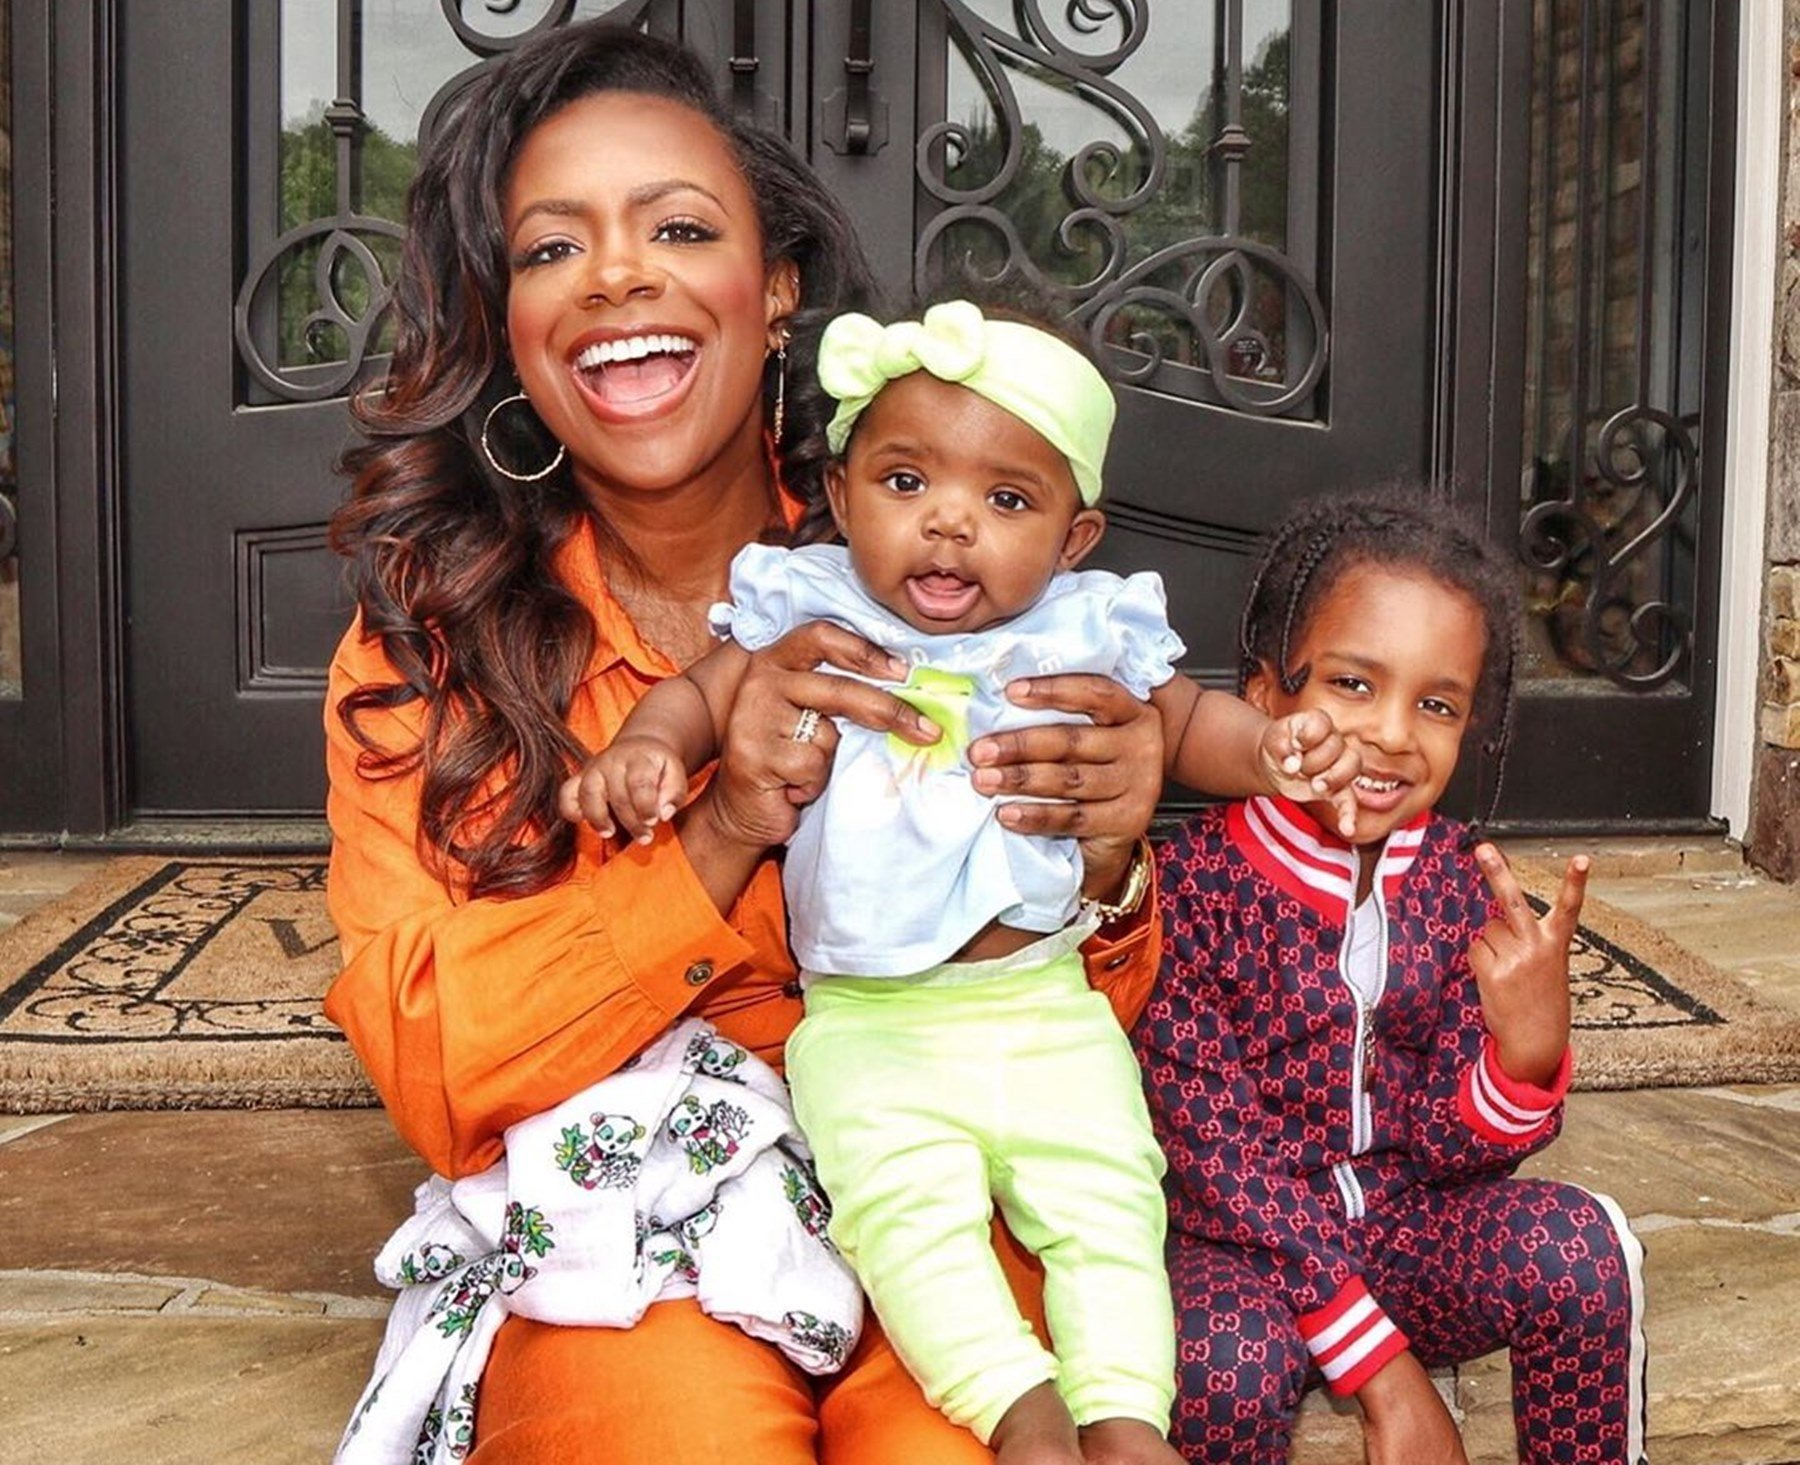 Kandi Burruss' Daughter, Blaze Tucker Is A Busy Girl, Checking Out What's Going On In Ace Wells Tucker's Room – See The Funny Video